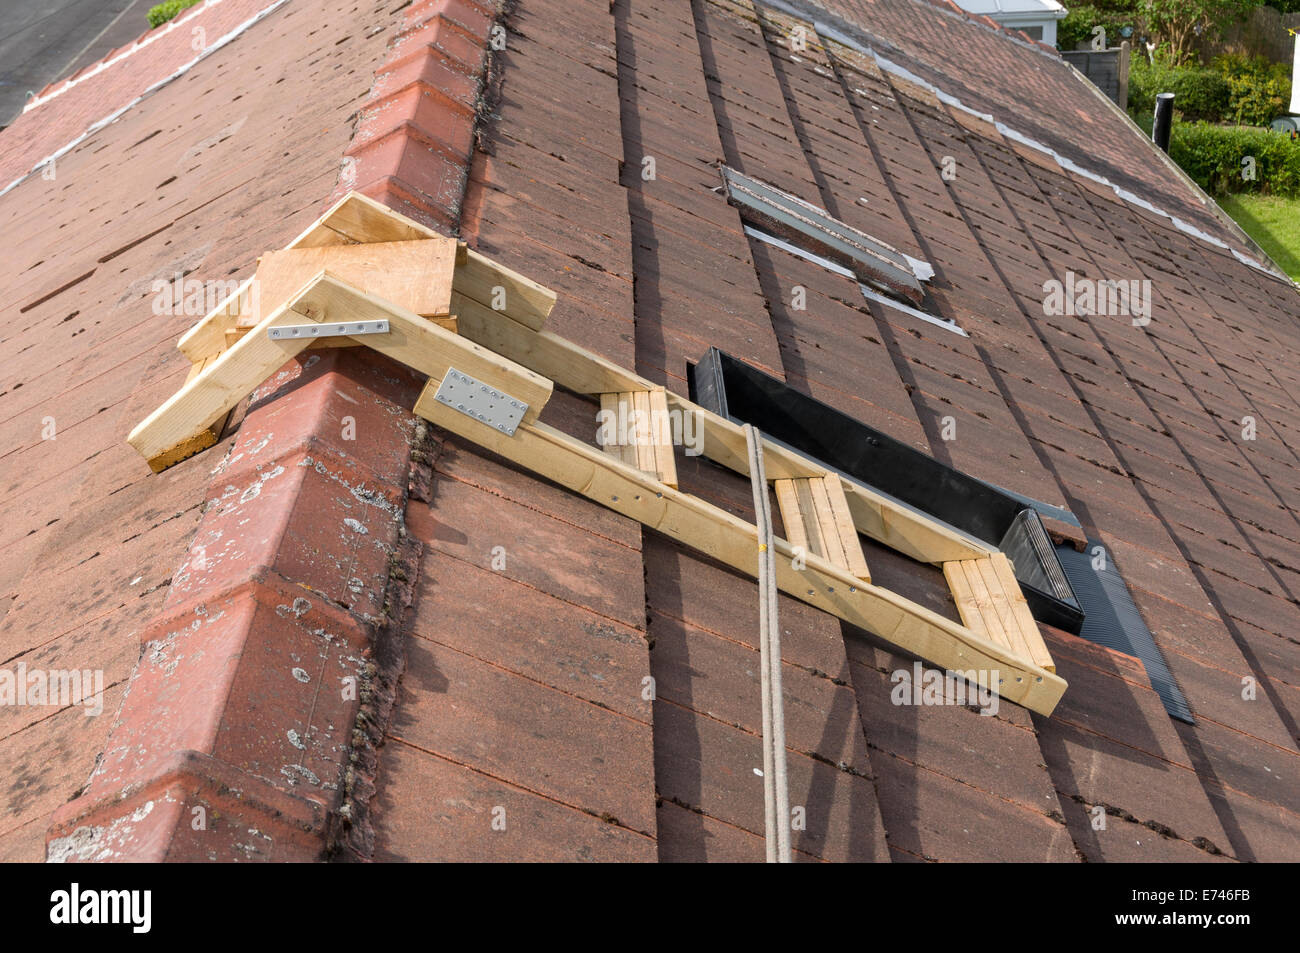 A Home Made Roof Step Ladder By A Skylight Window With